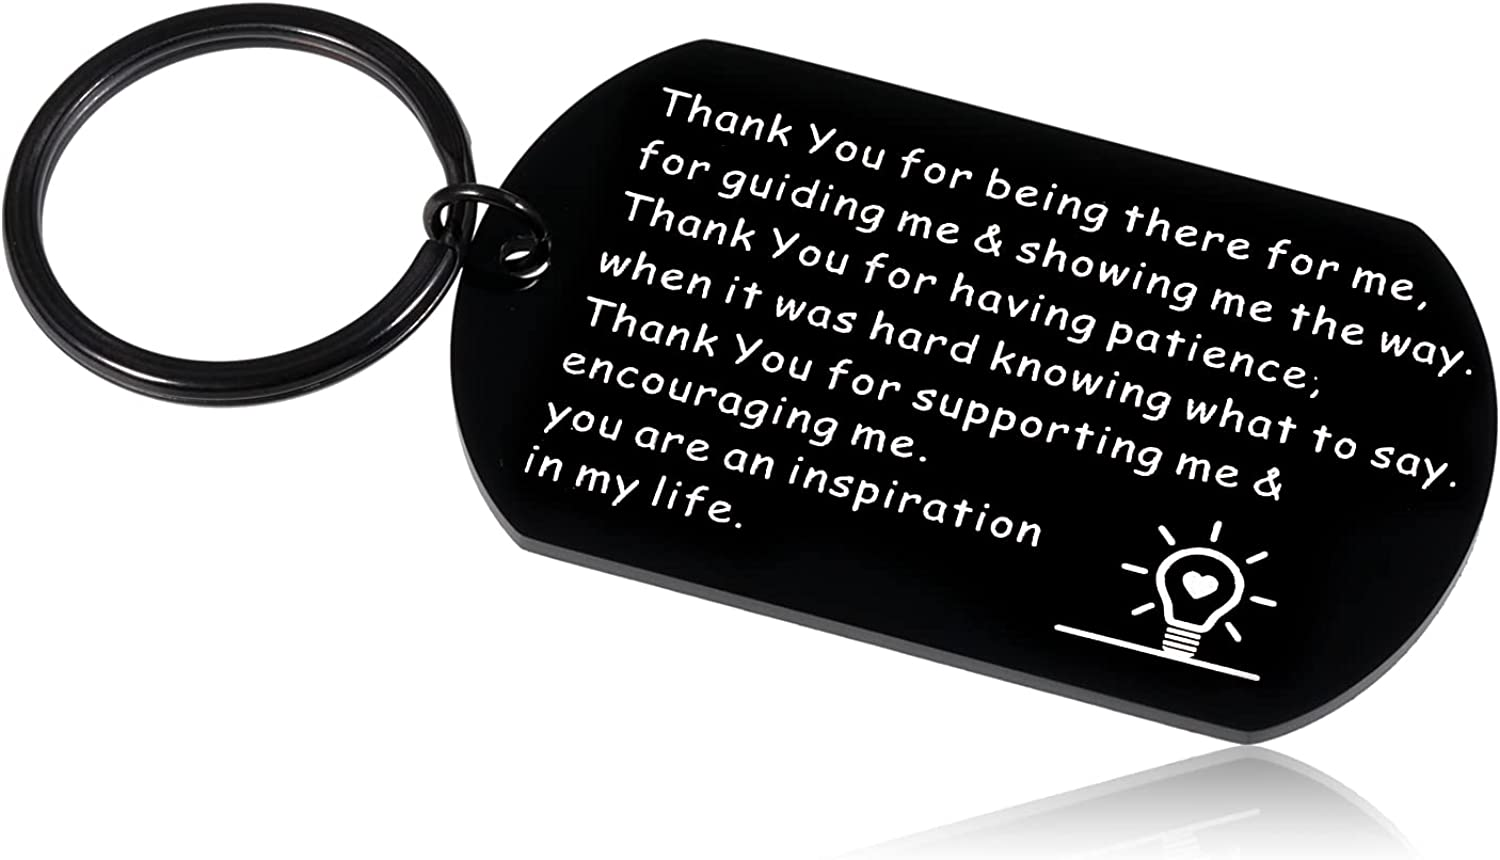 Thank You Gifts for Boss Lady Manag Max 78% OFF Supervisor Leaders PM Mentor Max 48% OFF